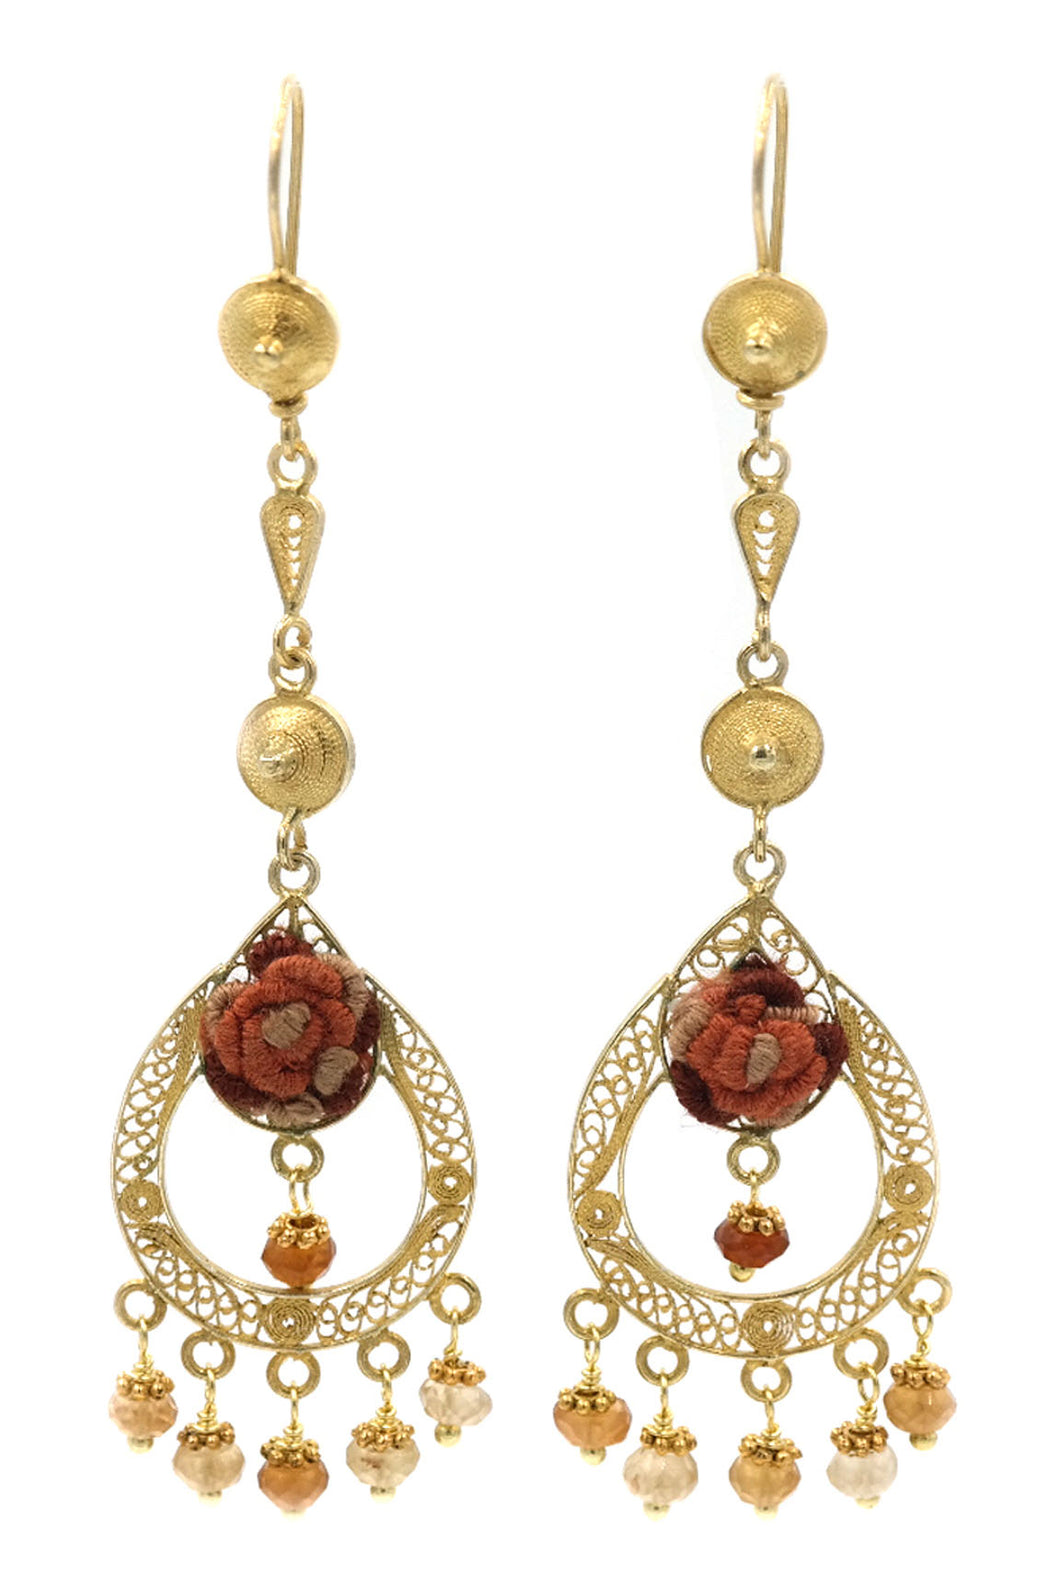 Gold Filigree Chandelier Brown Garnet Earrings